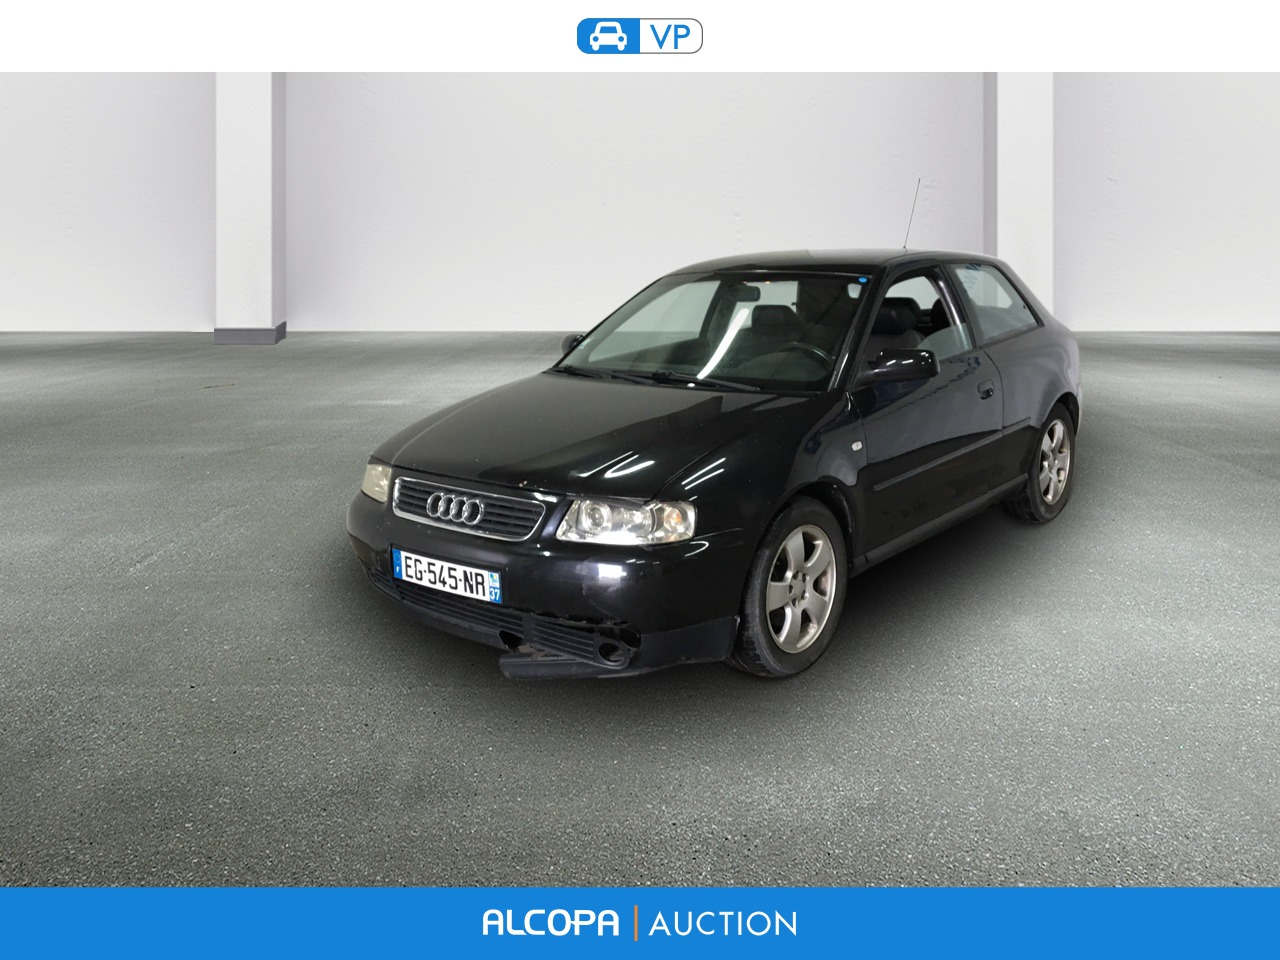 audi a3 evolution a3 1 9 tdi 130 pack sport ba alcopa auction. Black Bedroom Furniture Sets. Home Design Ideas